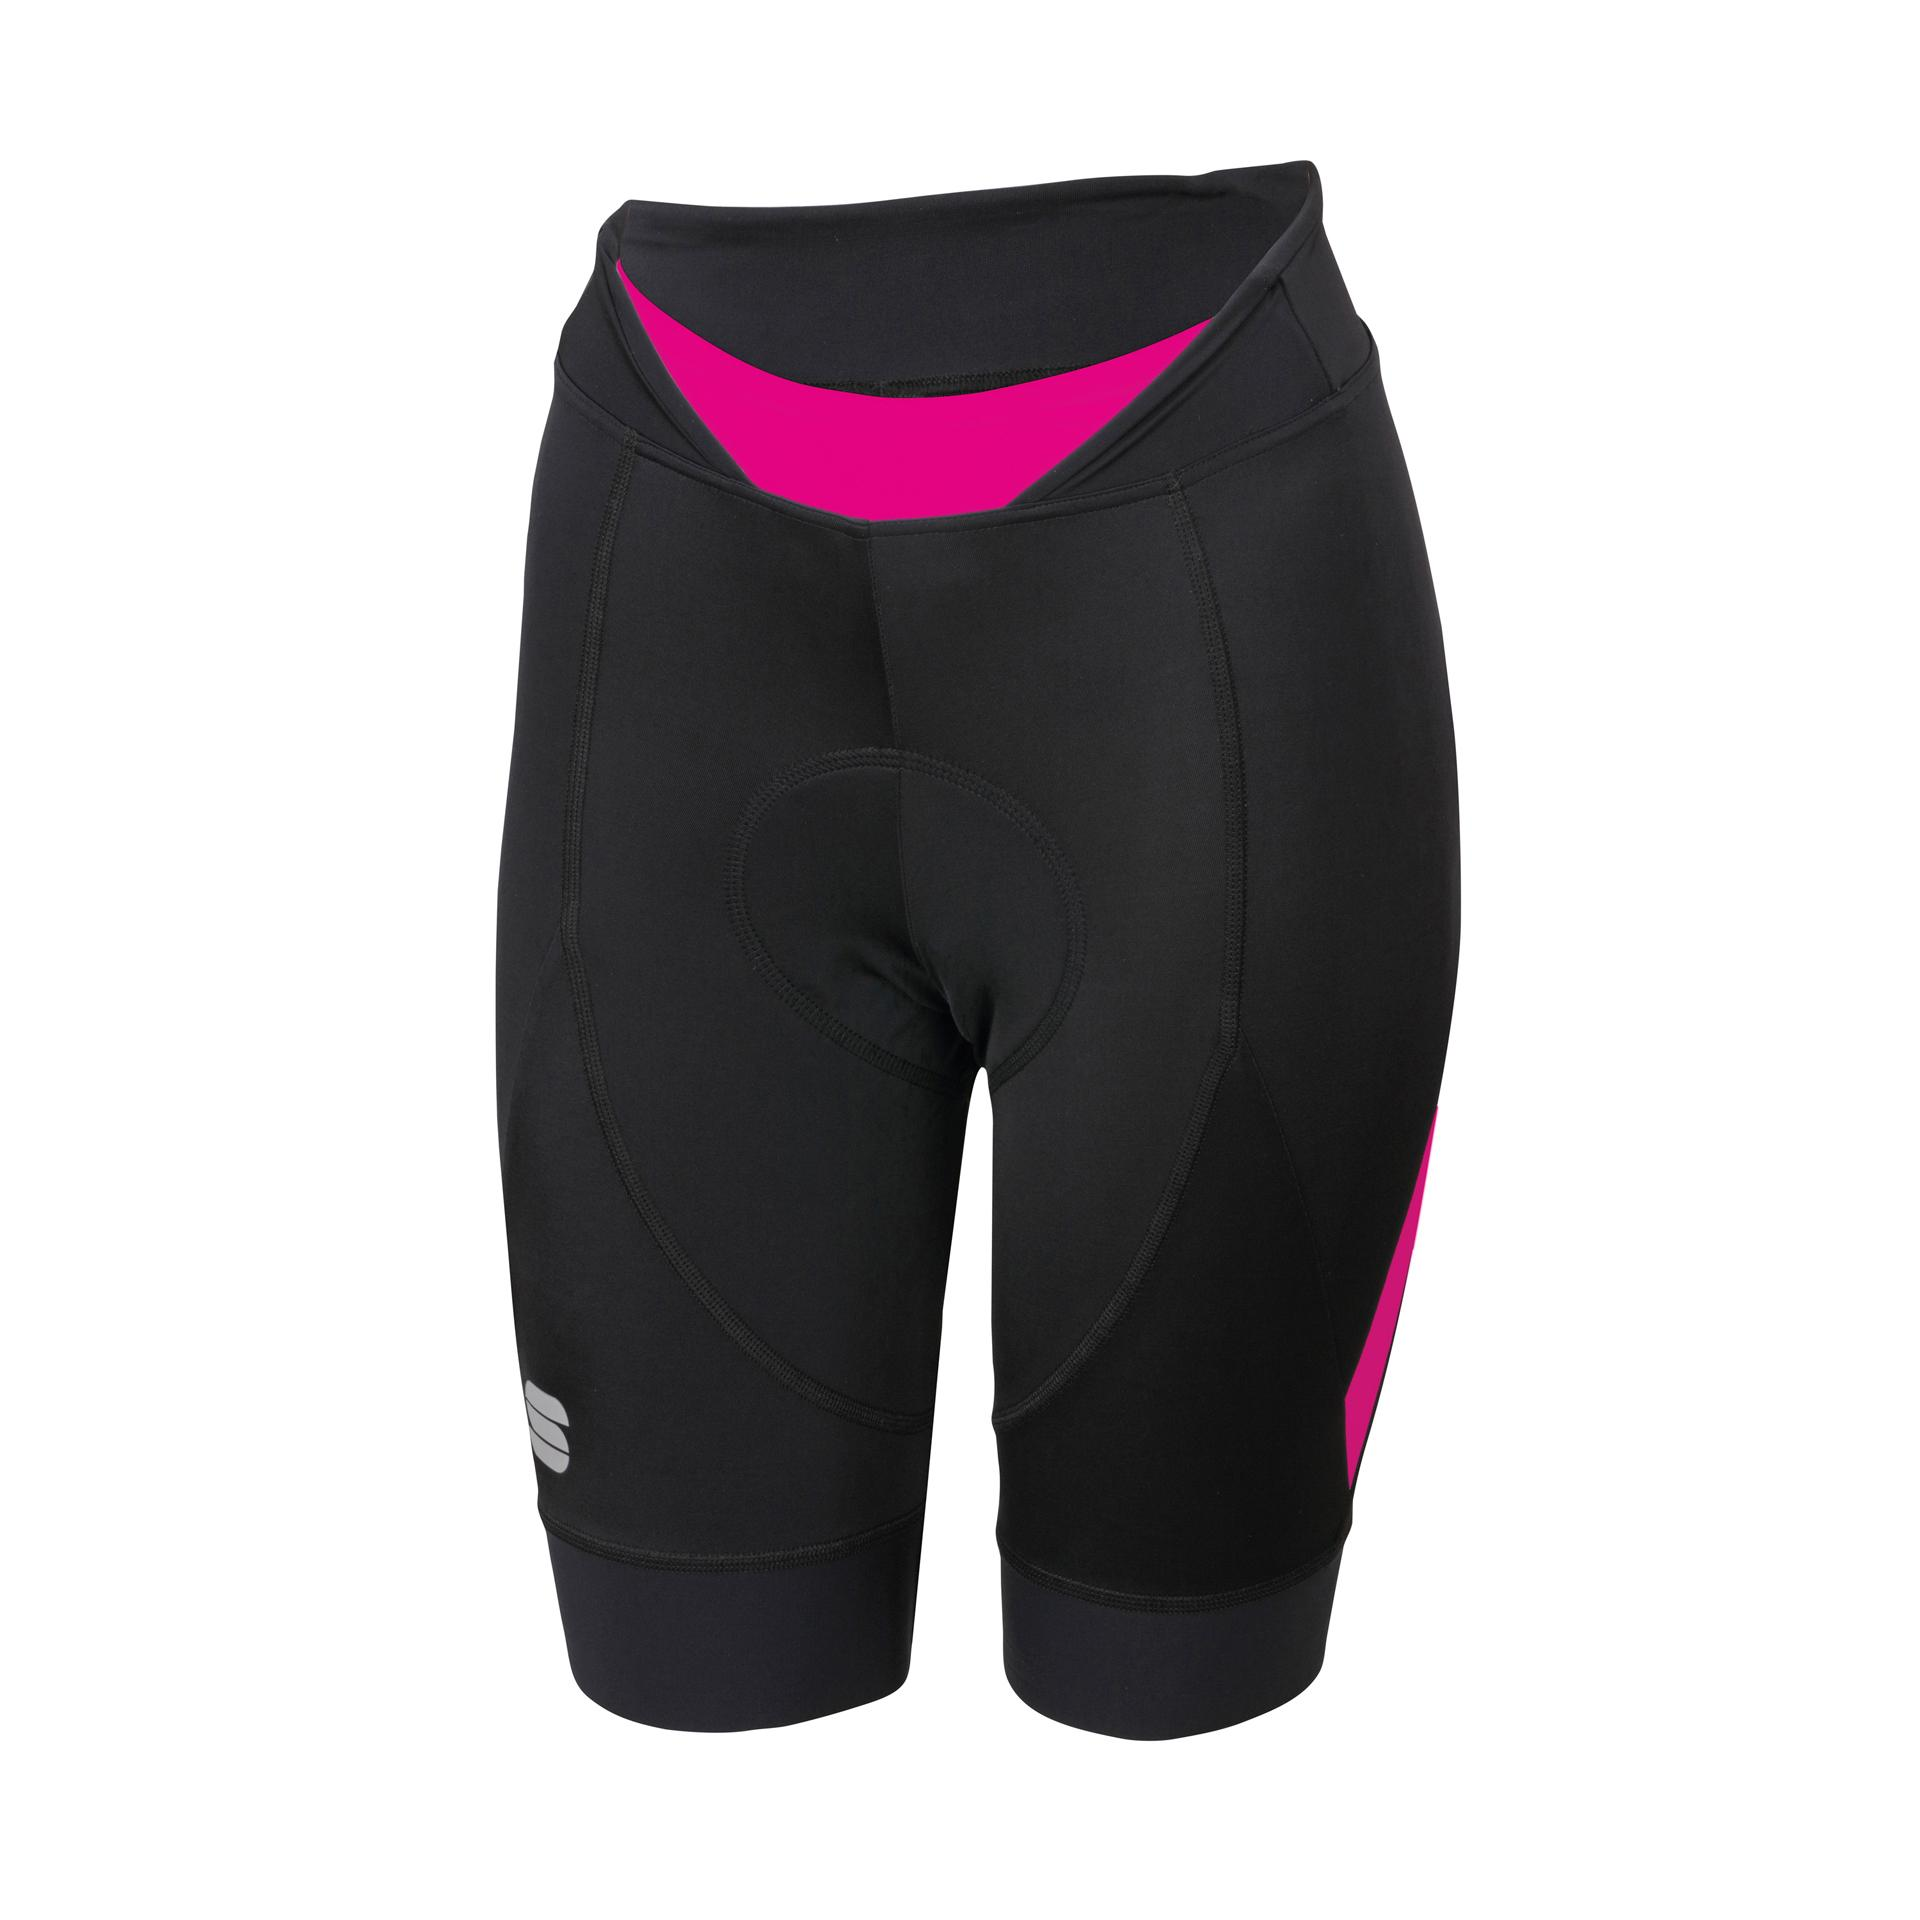 Sportful Fietsbroek zonder bretels Dames Zwart Roze / SF Neo W Short-Black/Bubble Gum